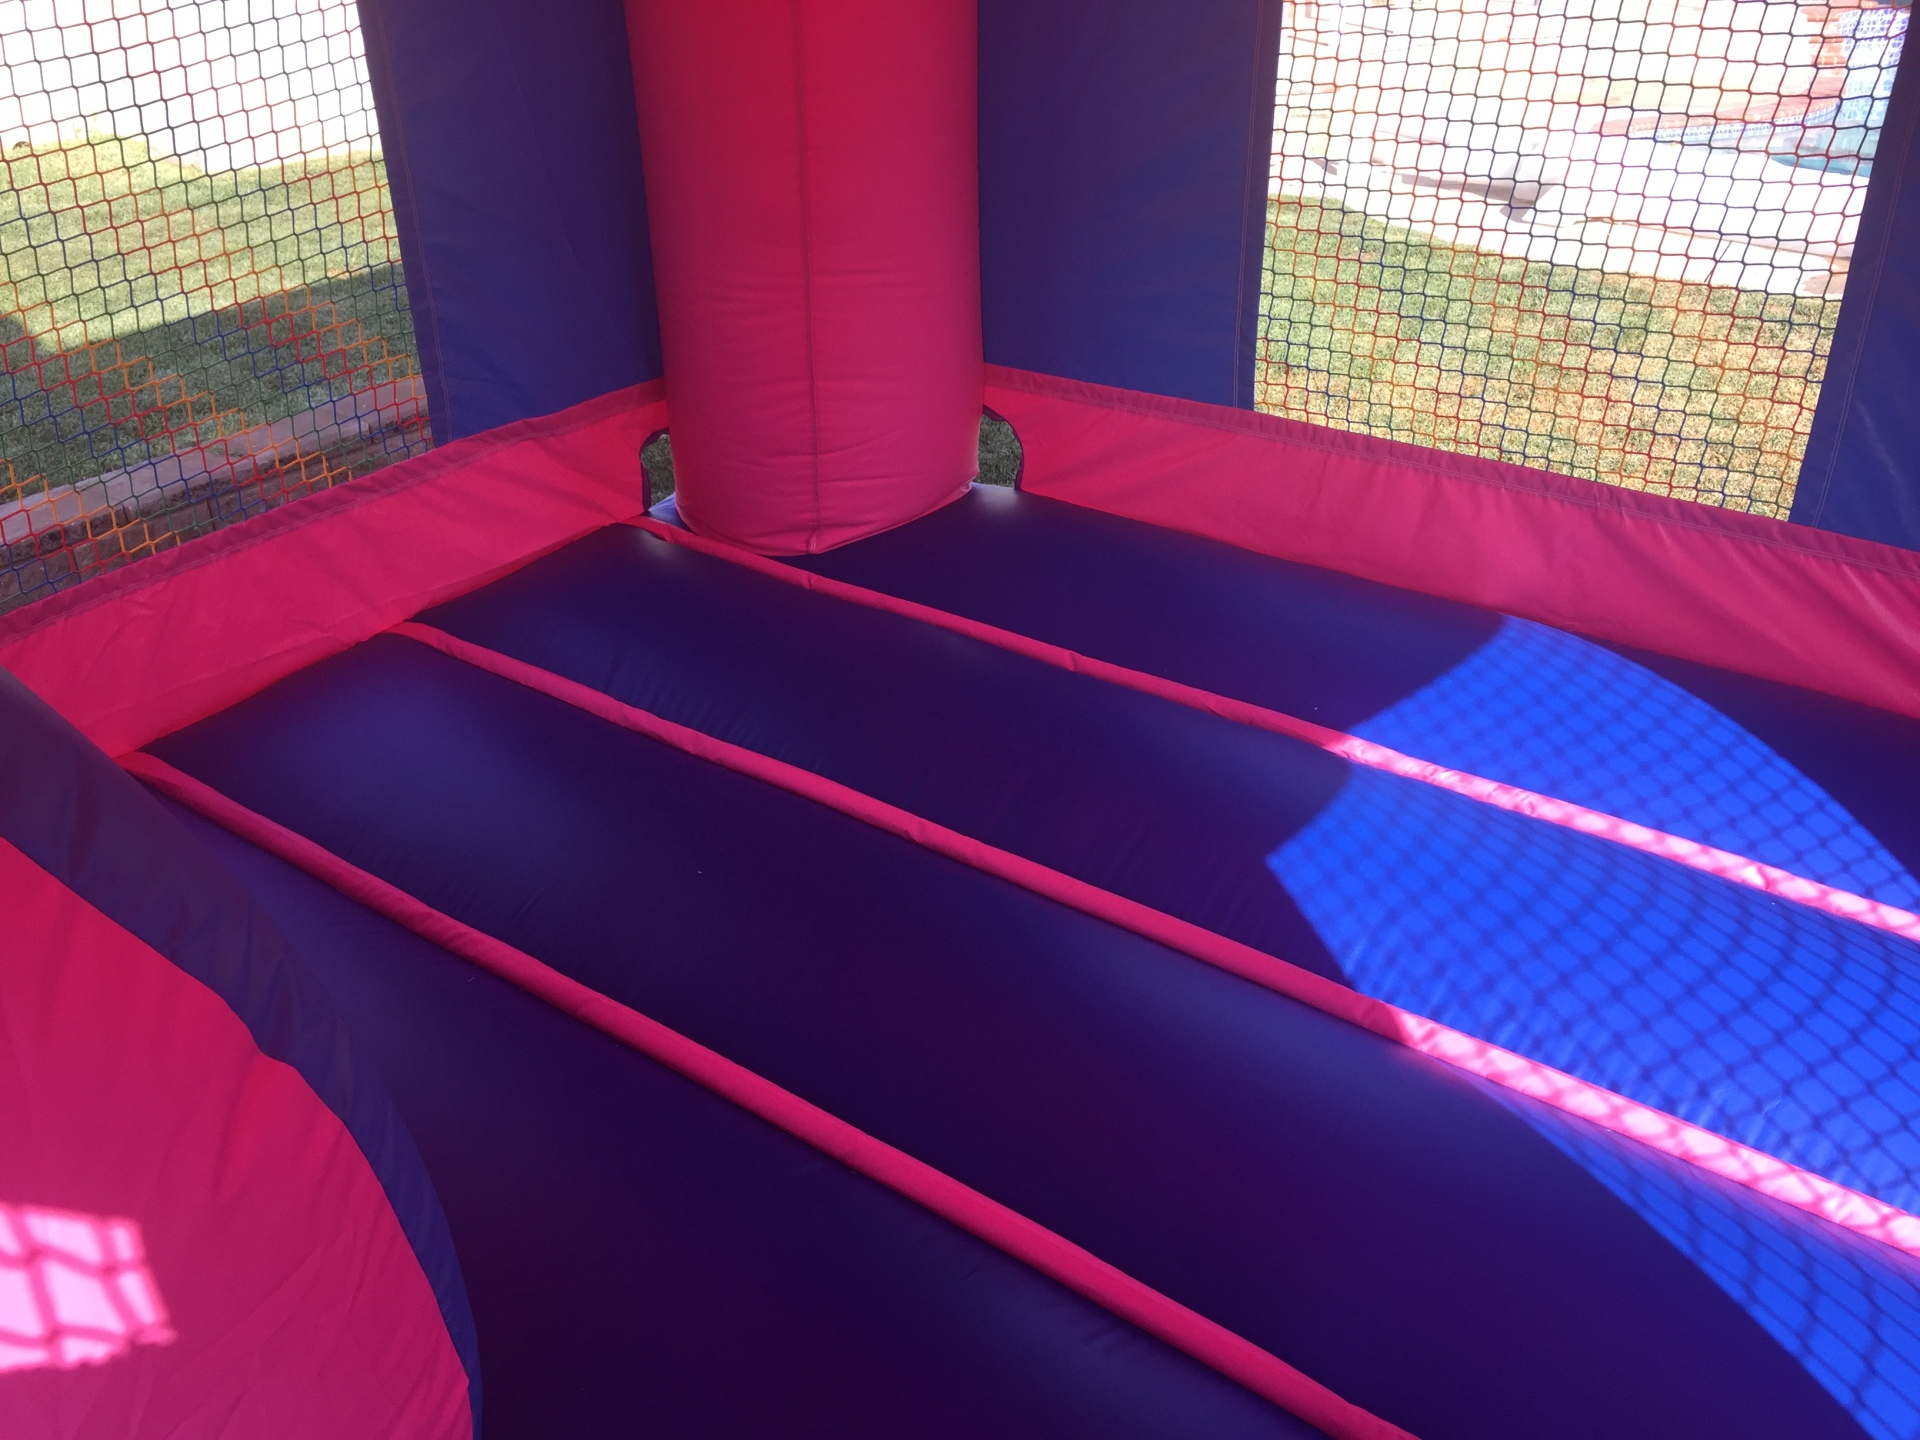 DOUBLSIDE COMBO JUMPER, DOUBLE WATERSLIDE, COMBO JUMPER, JUMPER WITH DOUBLE SLIDE, JUMPER WITH SLIDE, JUMPER SLIDE RENTALS, COMBO JUMPERS FOR RENT, JUMPERS WITH SLIDE FOR RENT, WATERSLIDES FOR RENT